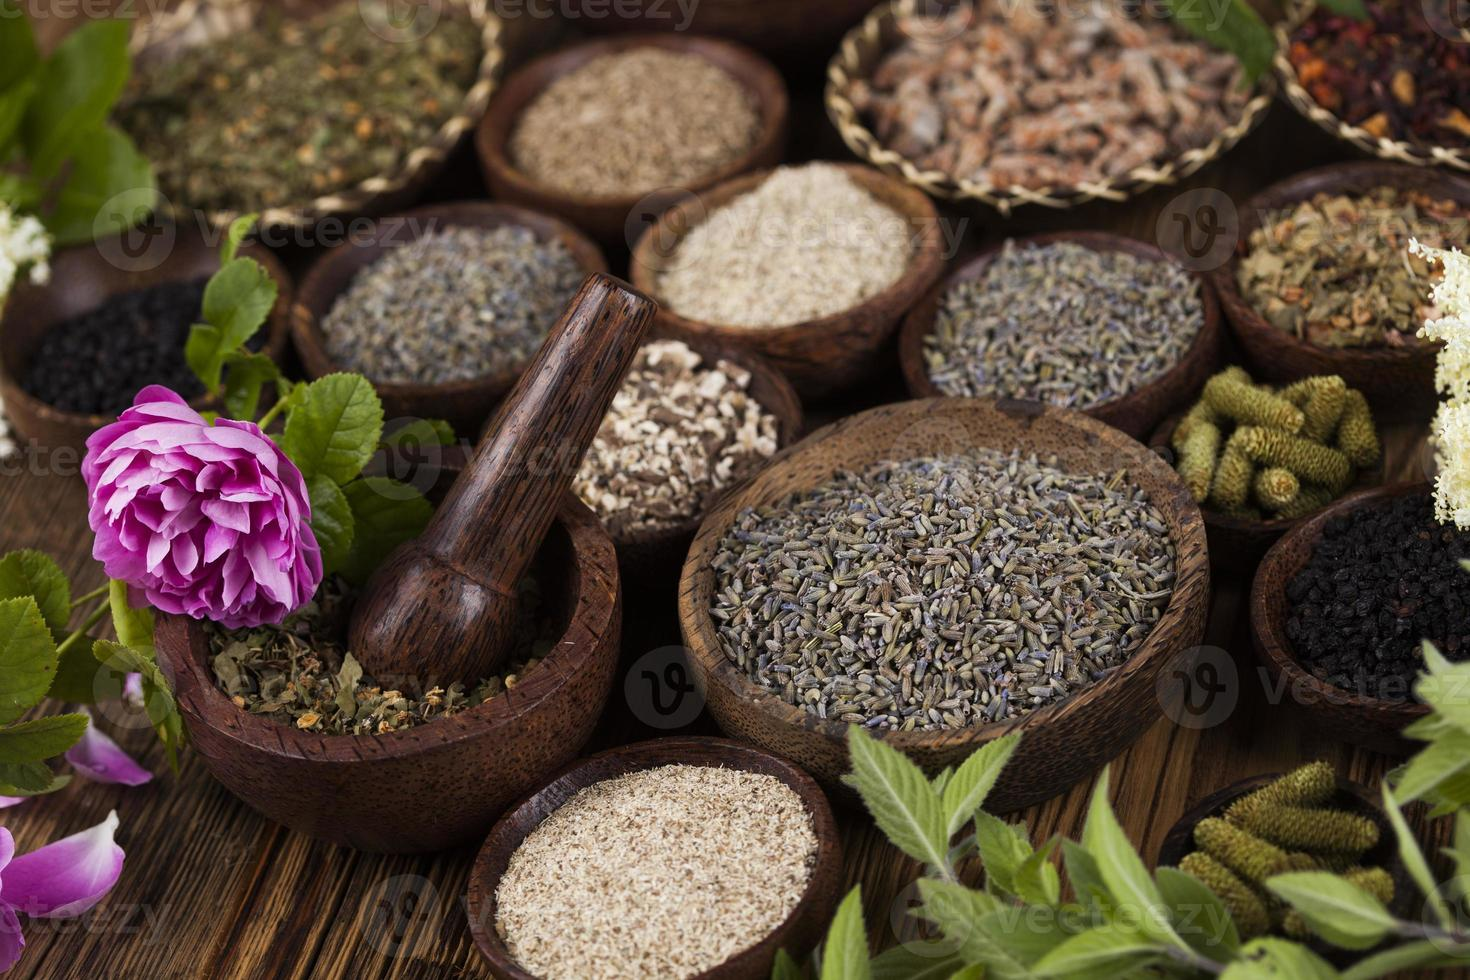 Natural medicine, wooden table background photo